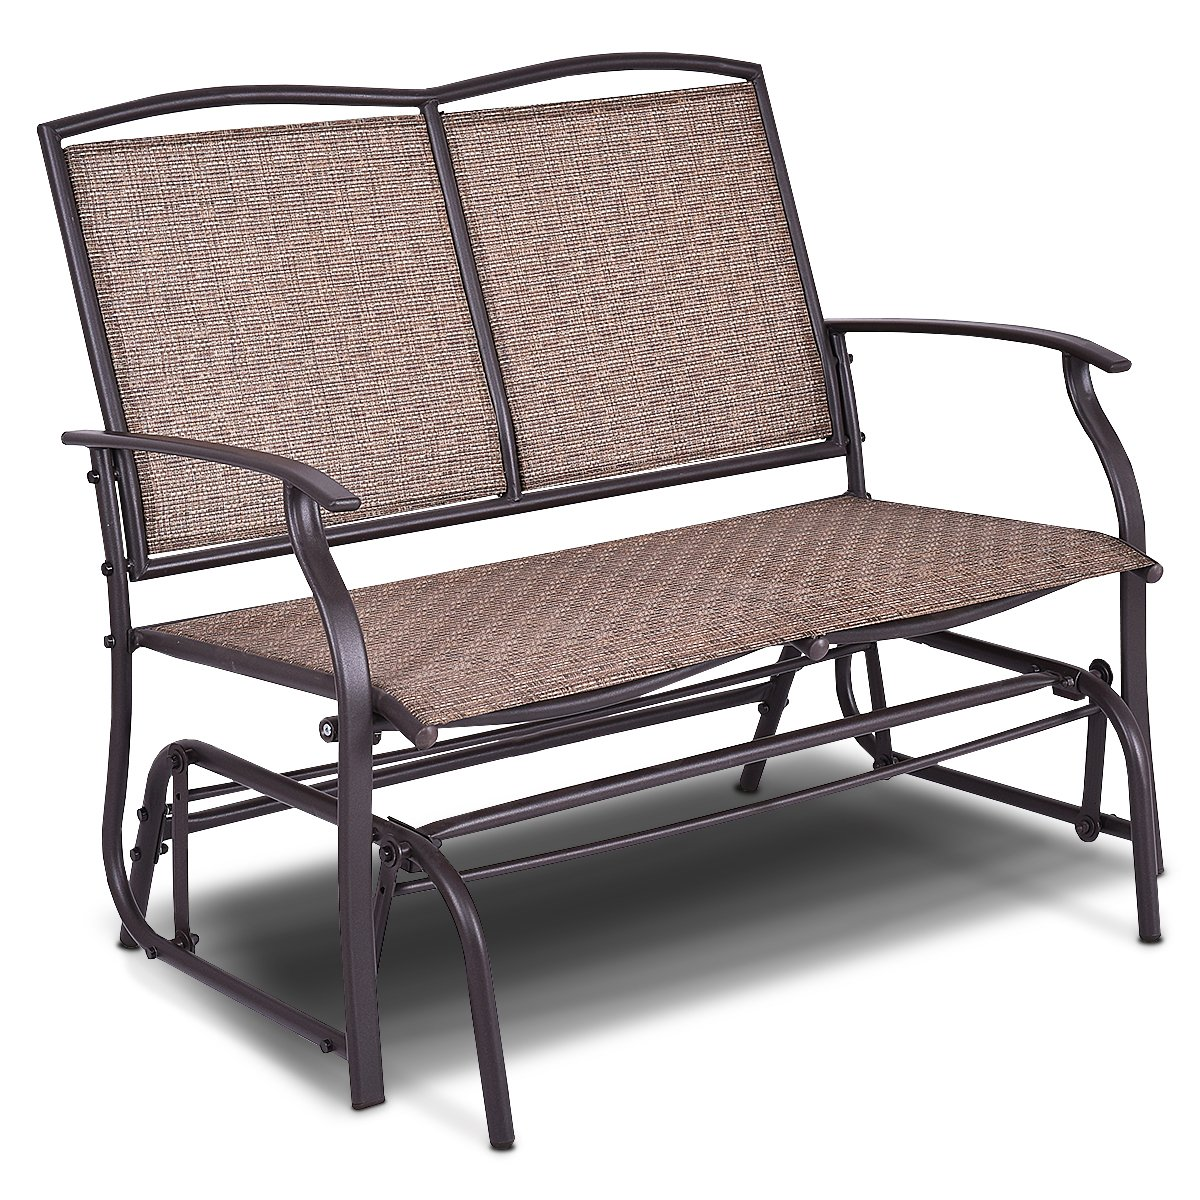 Giantex Patio Glider Bench Outdoor, Swing Loveseat, Patio Swing Rocker Lounge Glider Chair